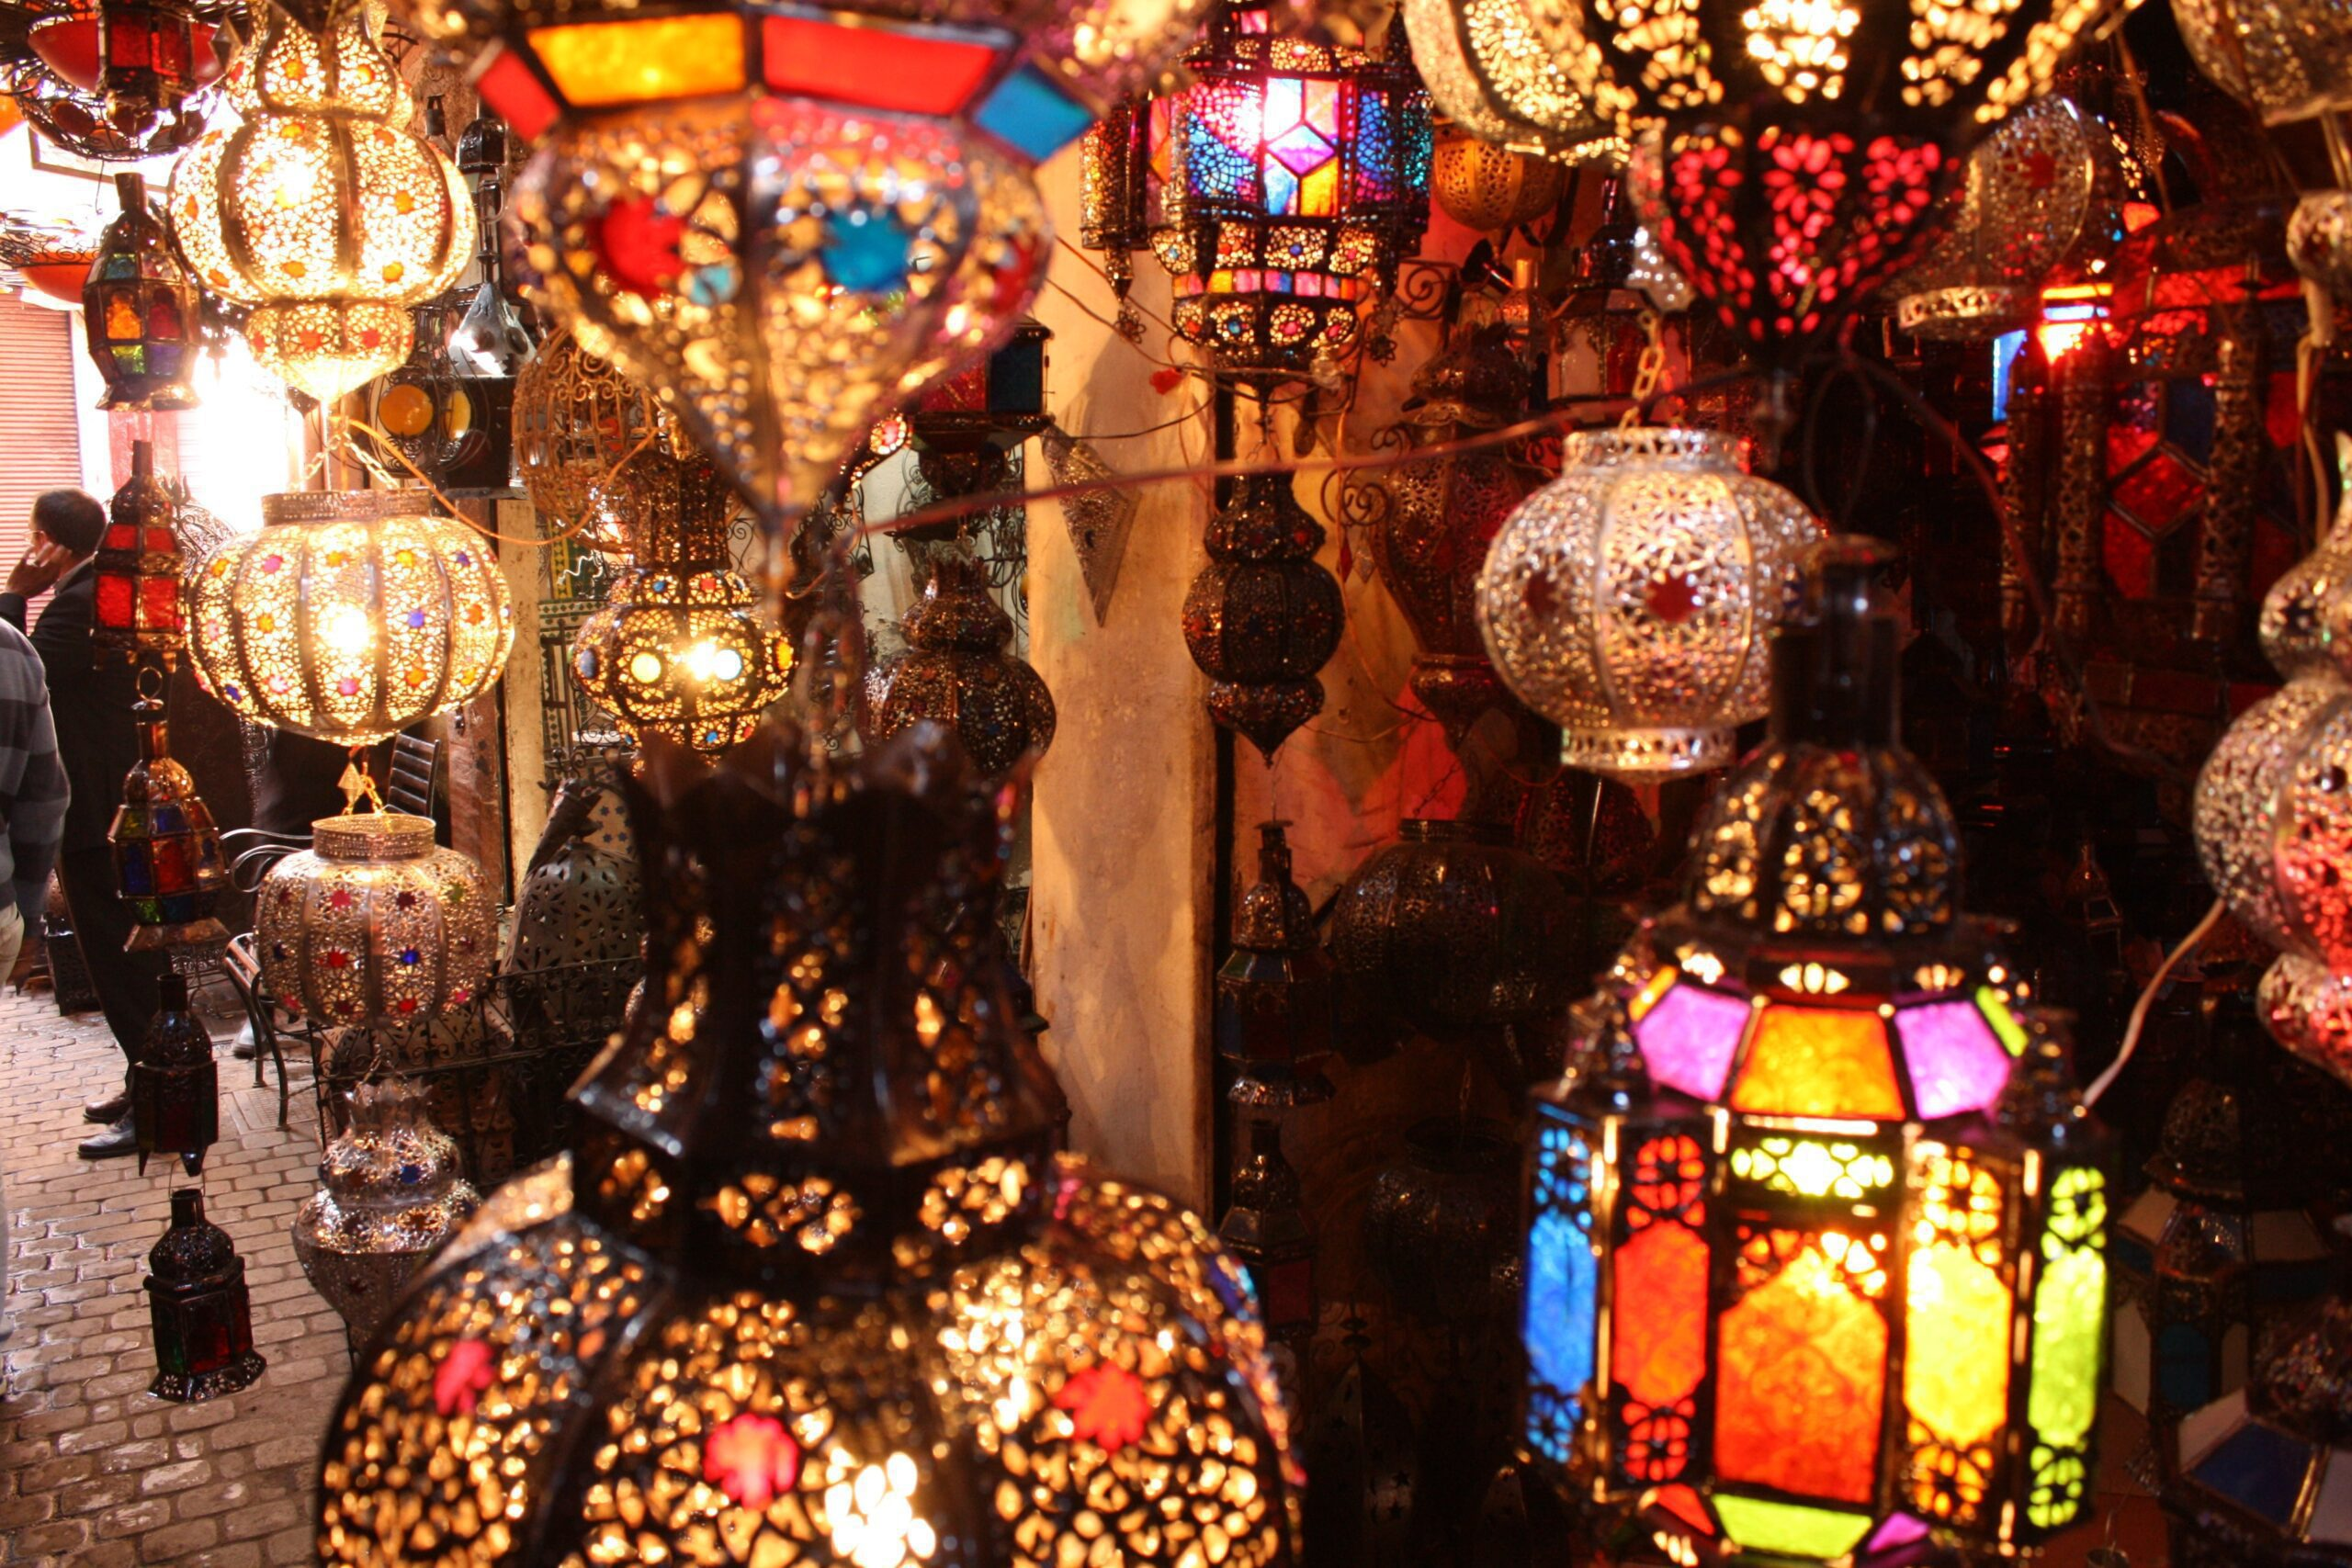 Treasures in the souk of Marrakech